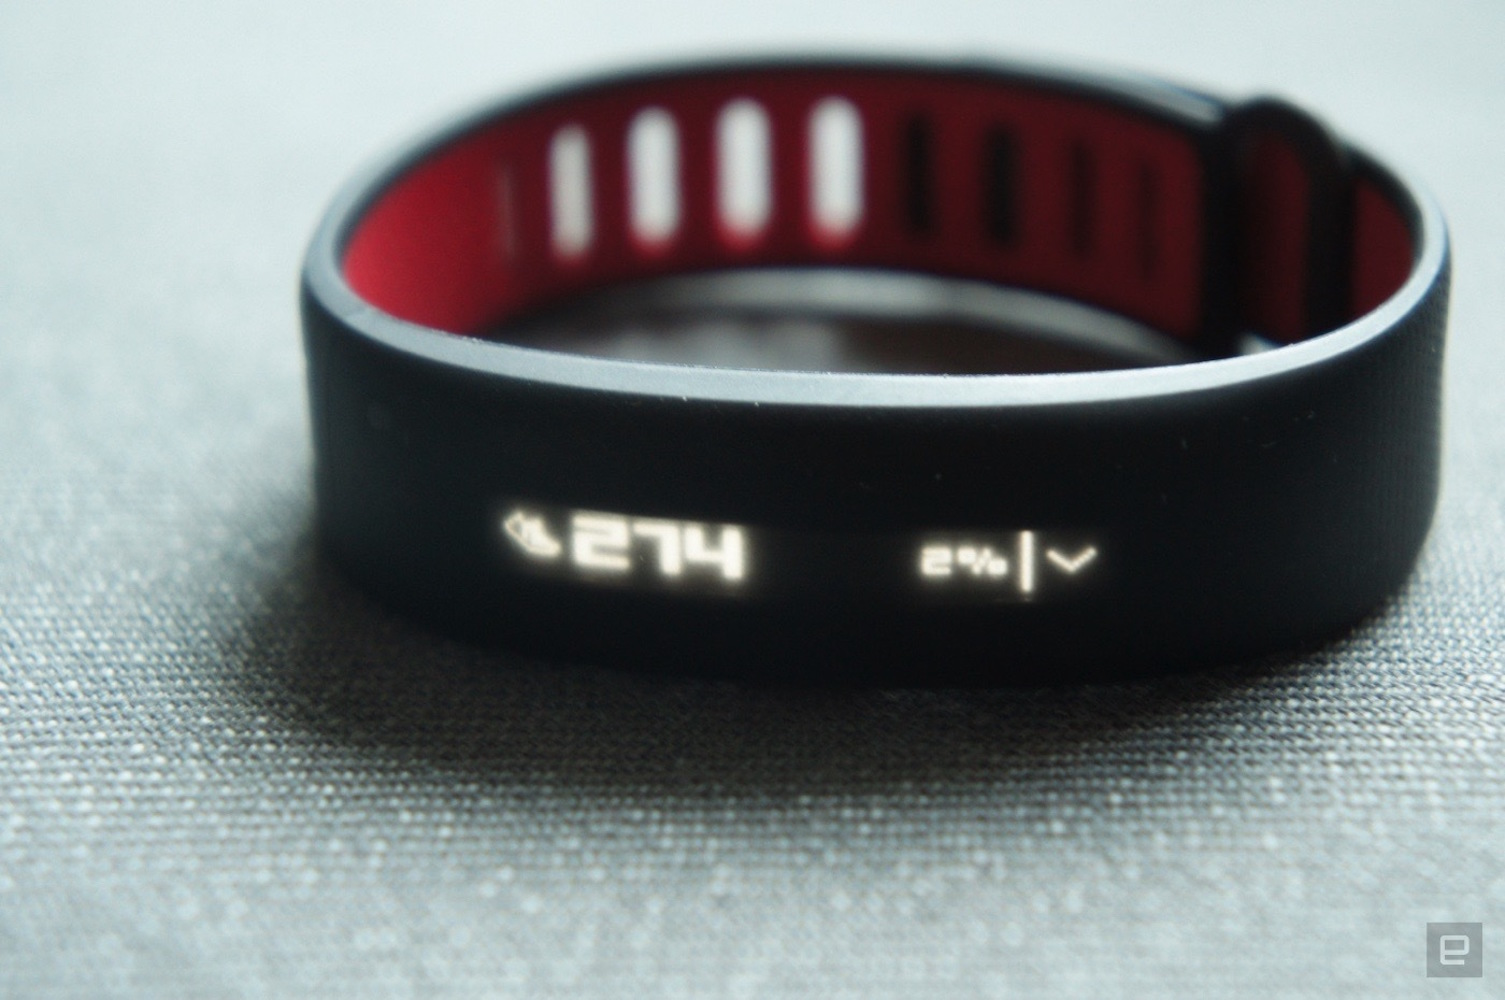 Under Armour HealthBox Connected Fitness System